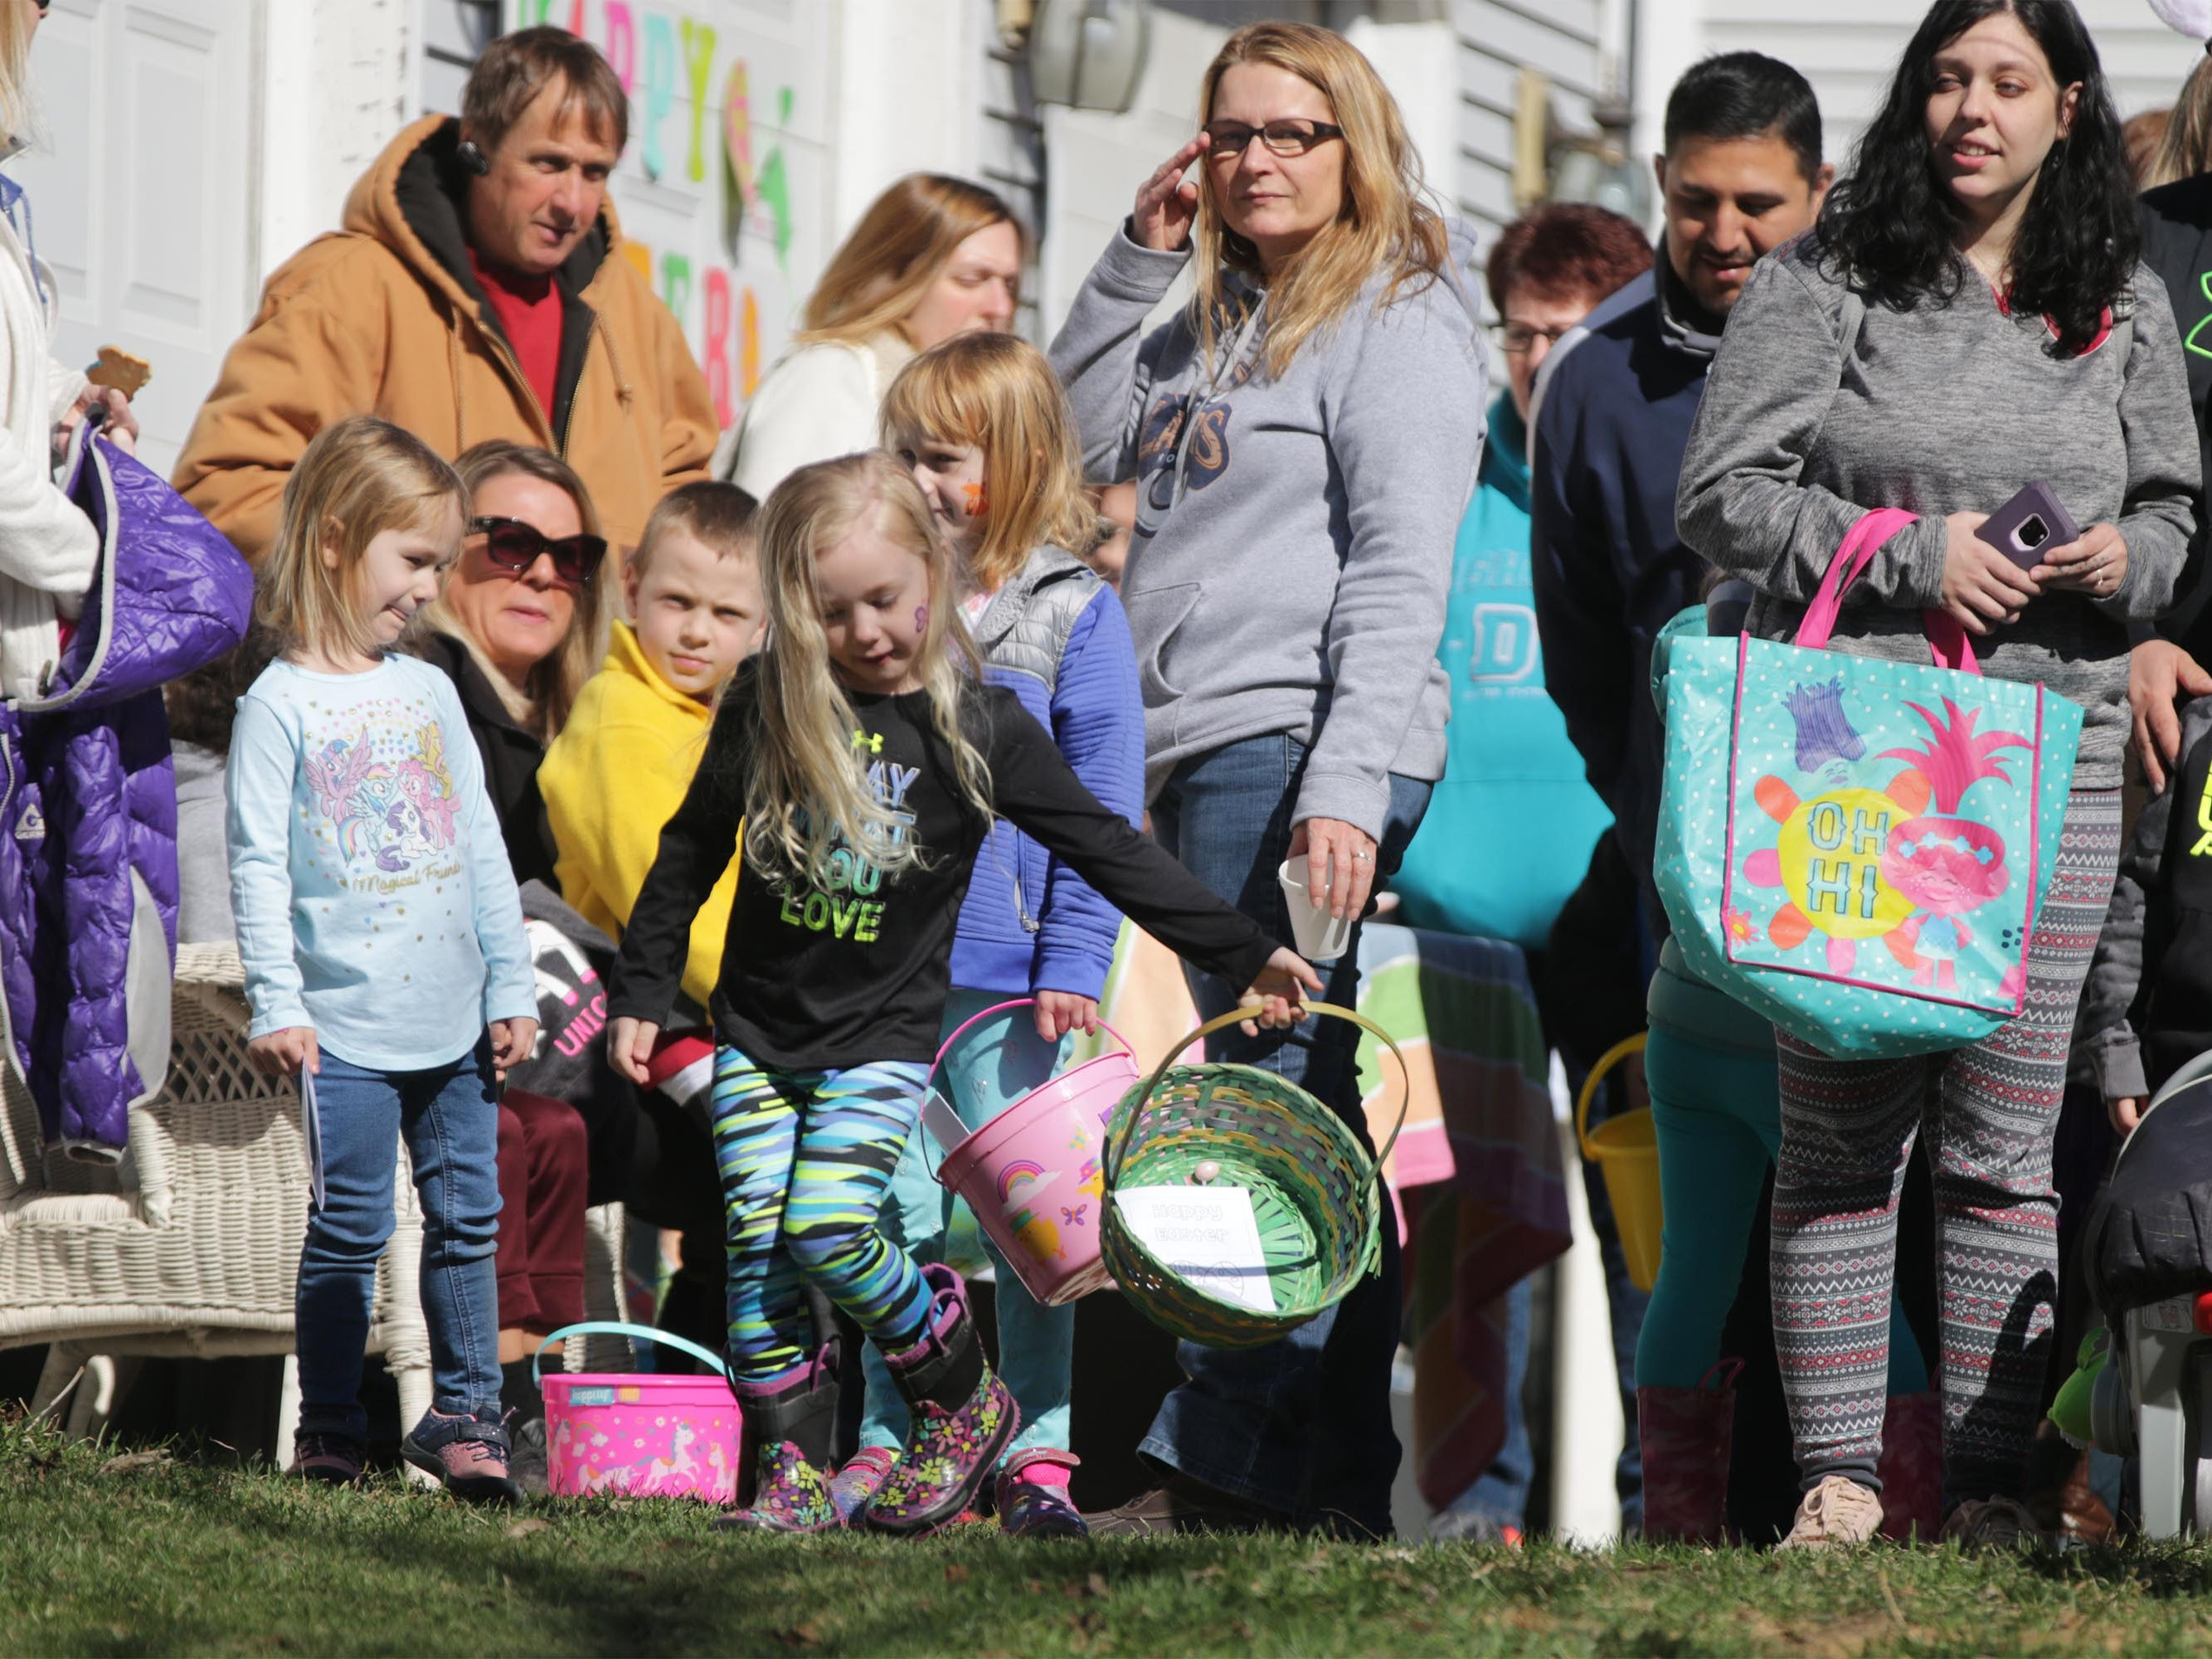 Children anxiously twirl around beore the start of the Hocevar Easter Egg Hunt, Saturday, April 20, 2019, in Sheboygan Falls, Wis.  This years marks 25 years for the Hocevar Family holding an Easter egg hunt at their home, according to Kathy Hocevar.